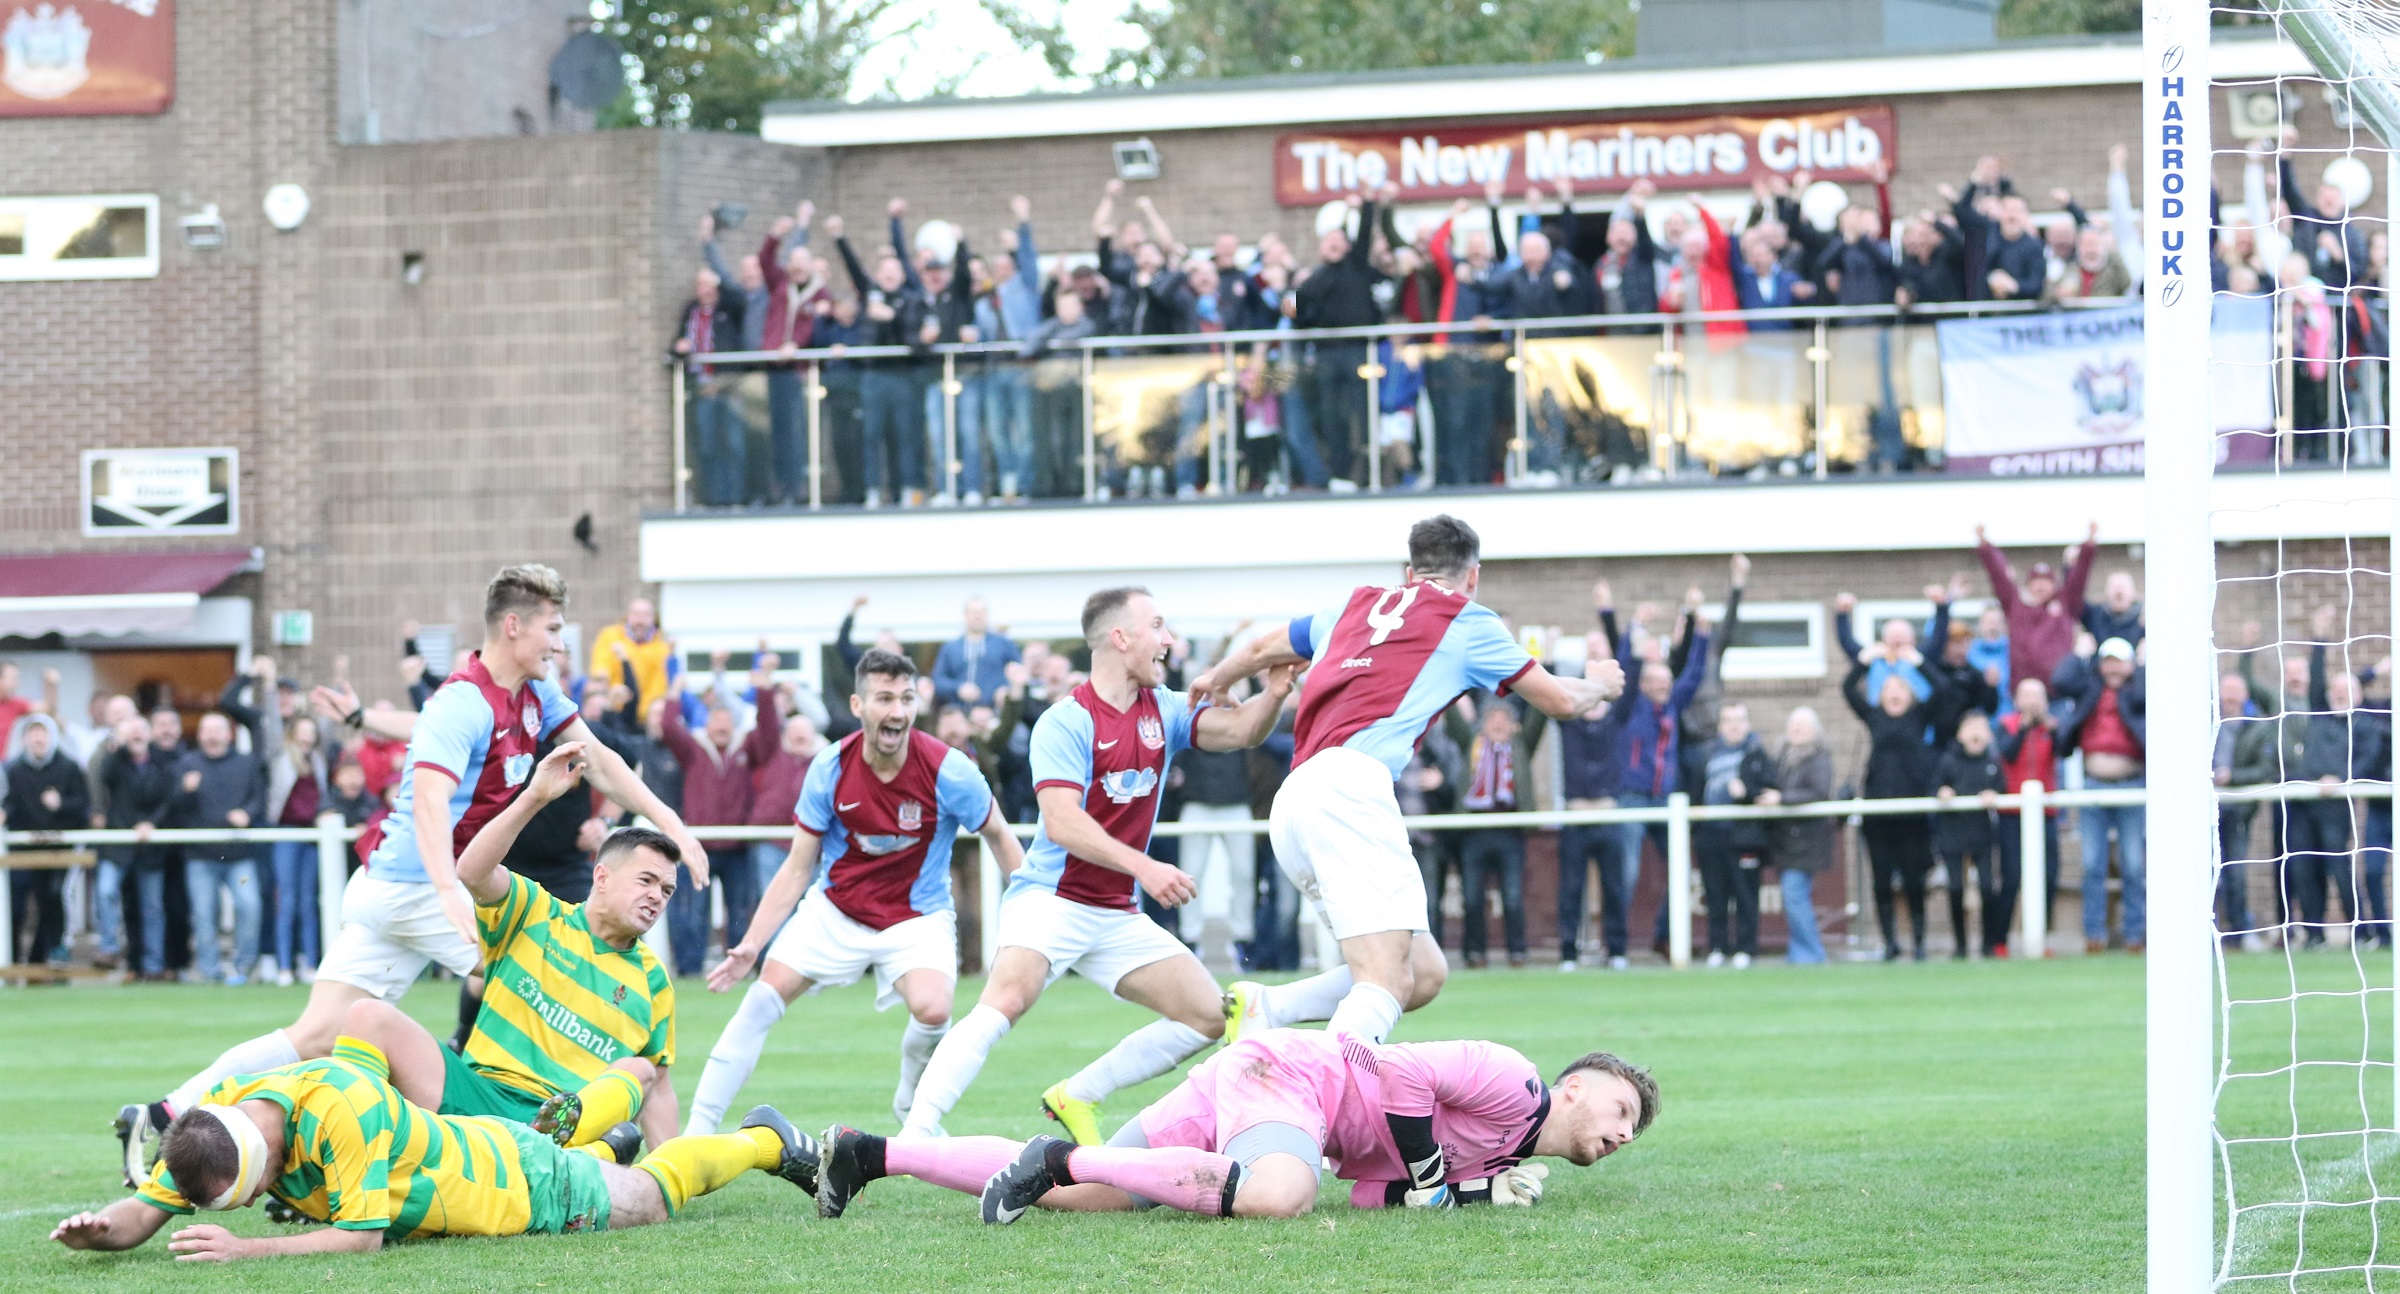 South Shields 2-1 Runcorn Linnets: Stoppage time winner seals FA Vase win